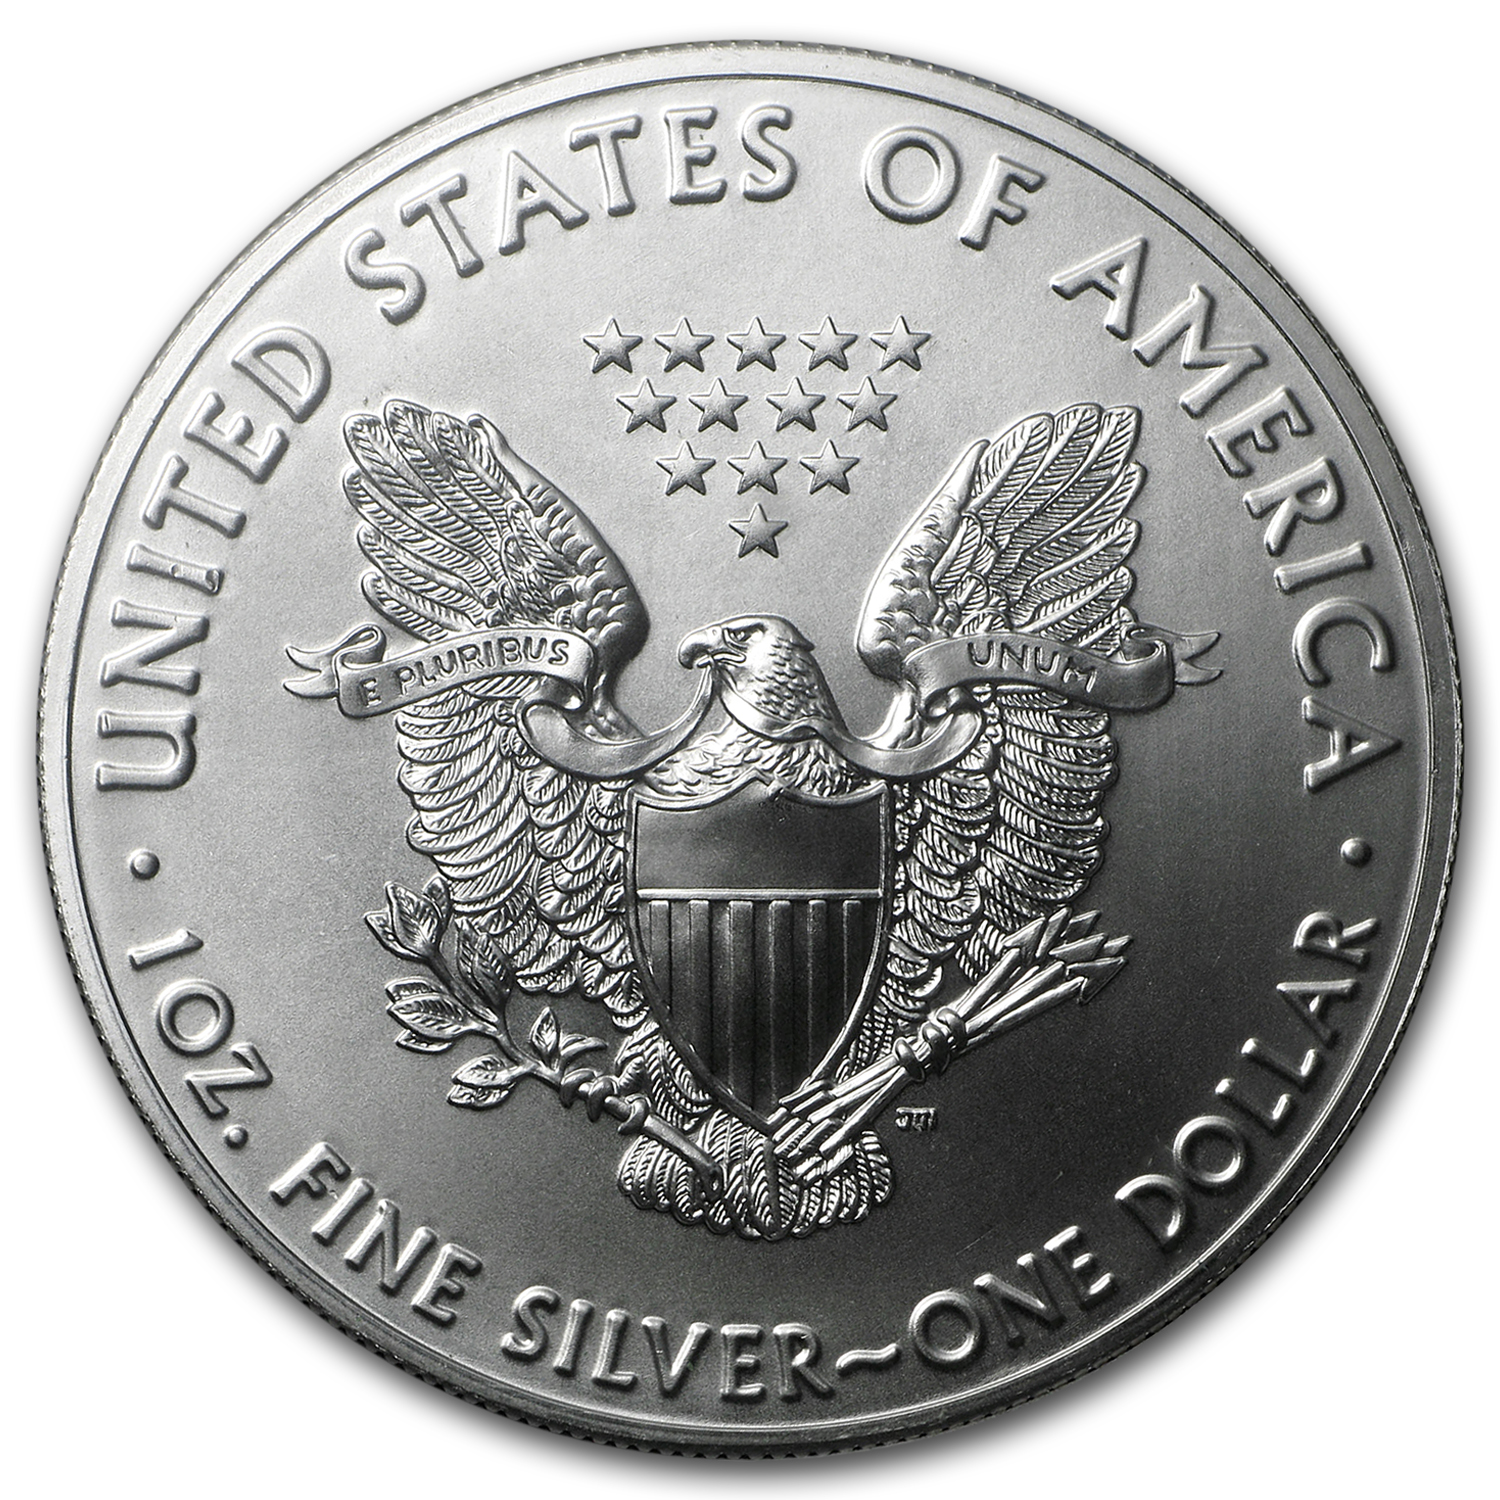 2016 1 oz Silver American Eagle BU (From Santa, Harris Holder)